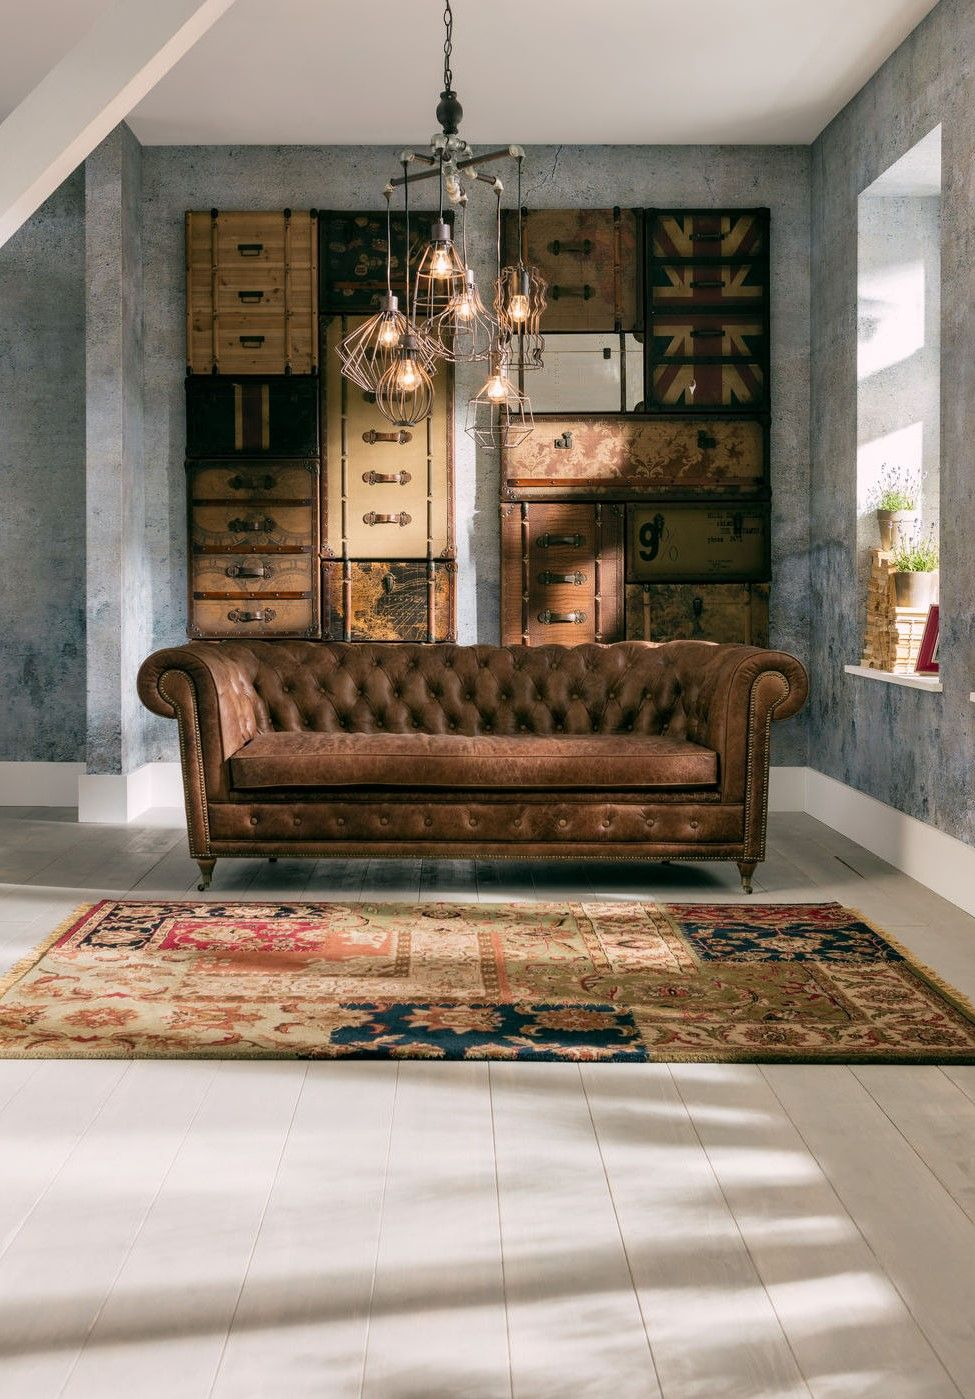 Chesterfield Wohnzimmer Sofa Oxford Aus Echtleder Style Industriell Chesterfield Sofa